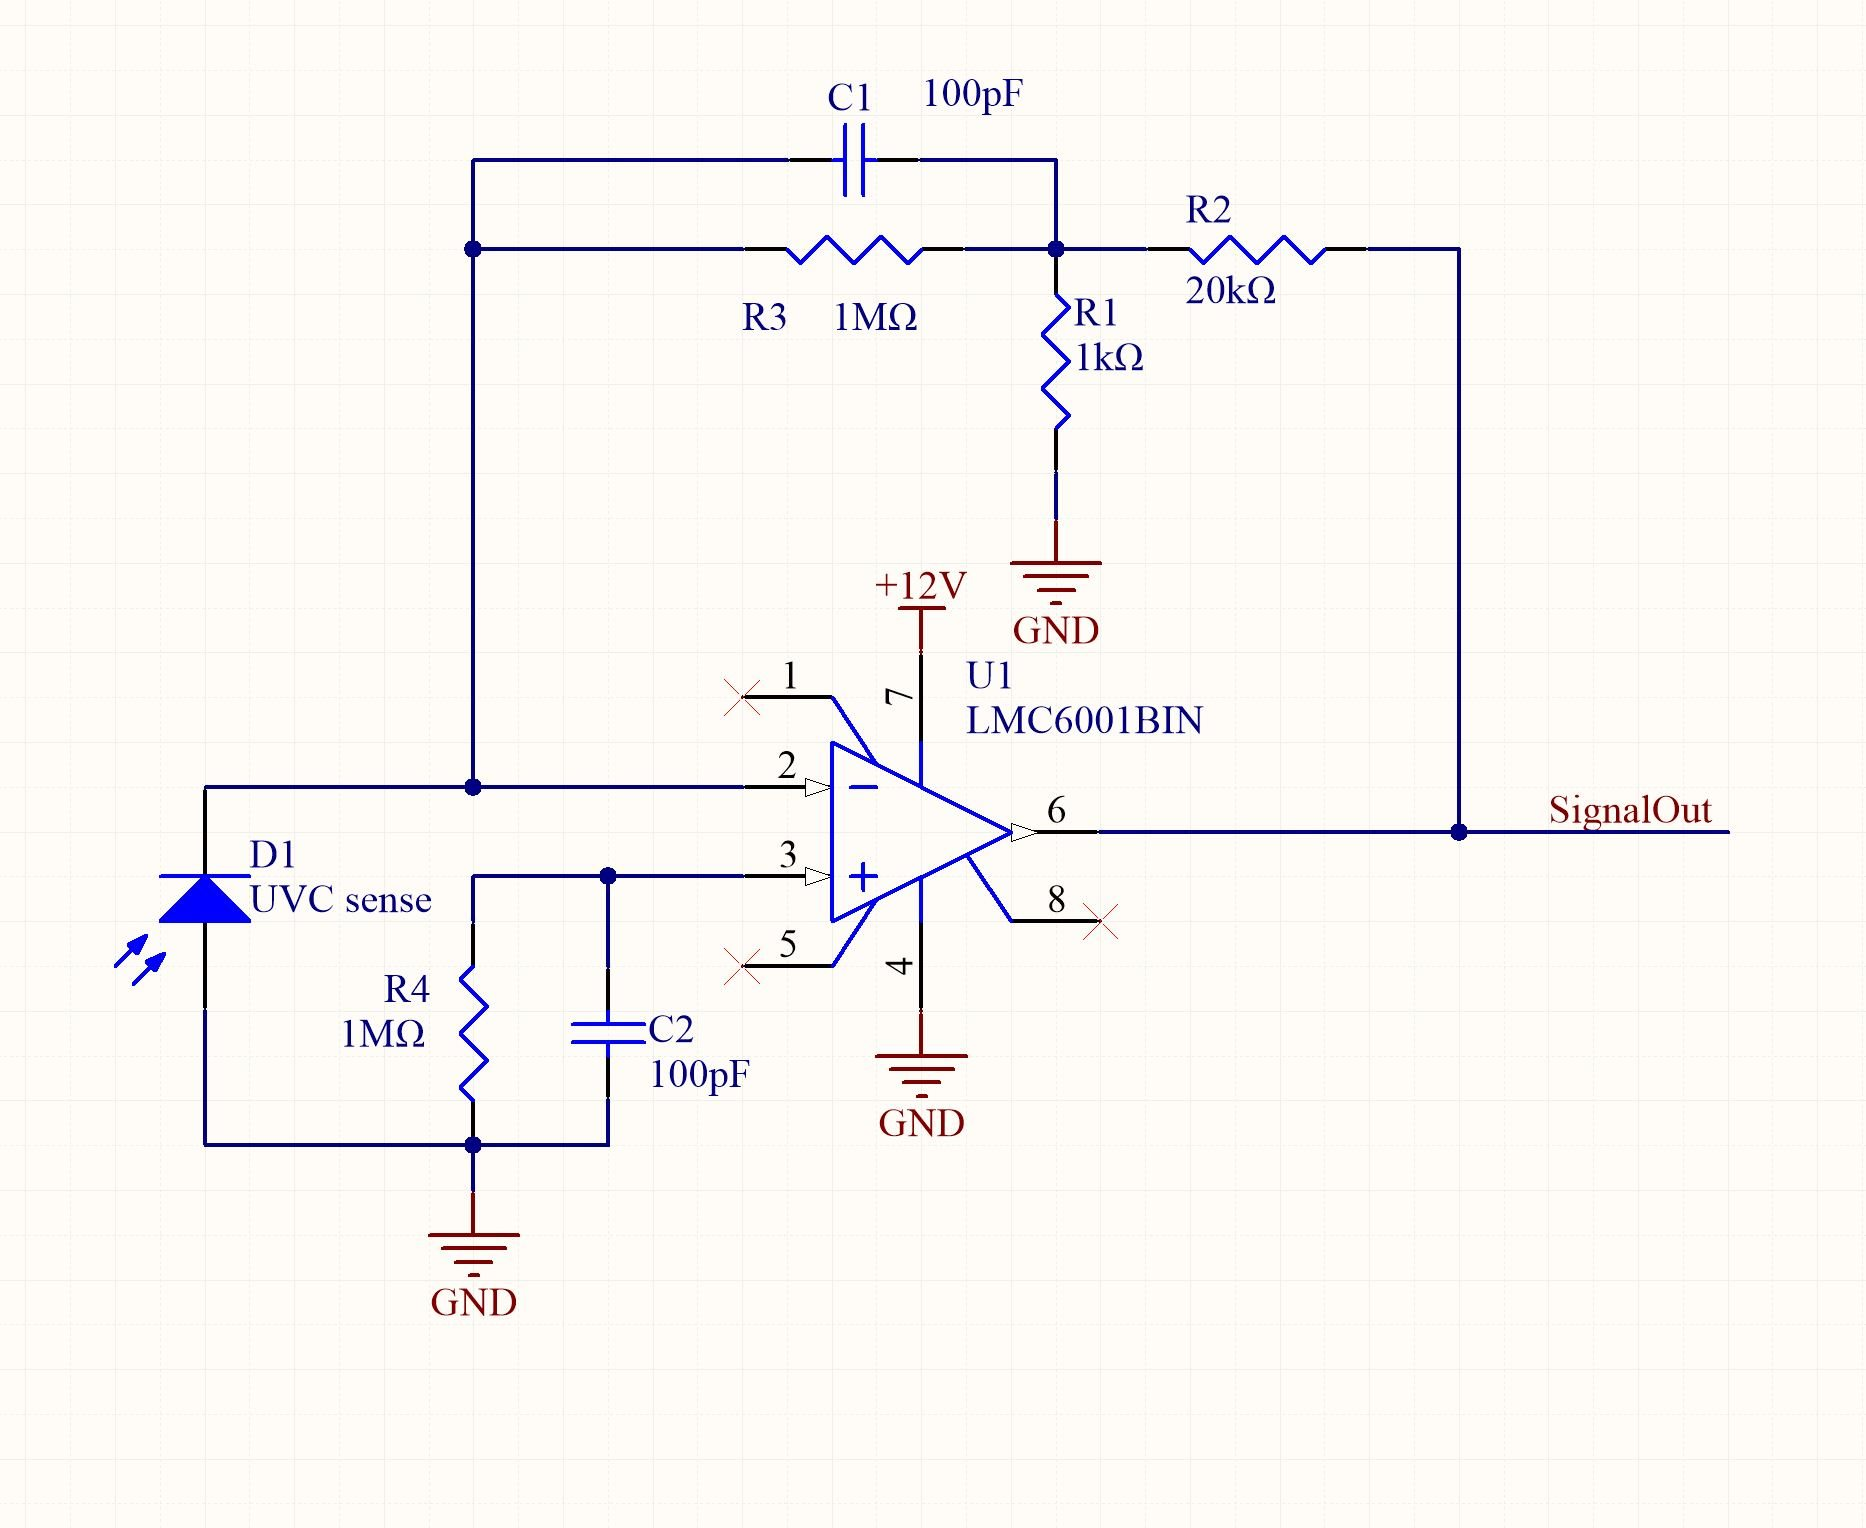 Lmc6001 Why In Is Short Circuit With Gnd How I Broken It Here The Schematic Of My Version And A Picture Am Afriad If Give Such Large Amplification Cause Signal Ip Really Small 06ua Max Current D1 Photodiode